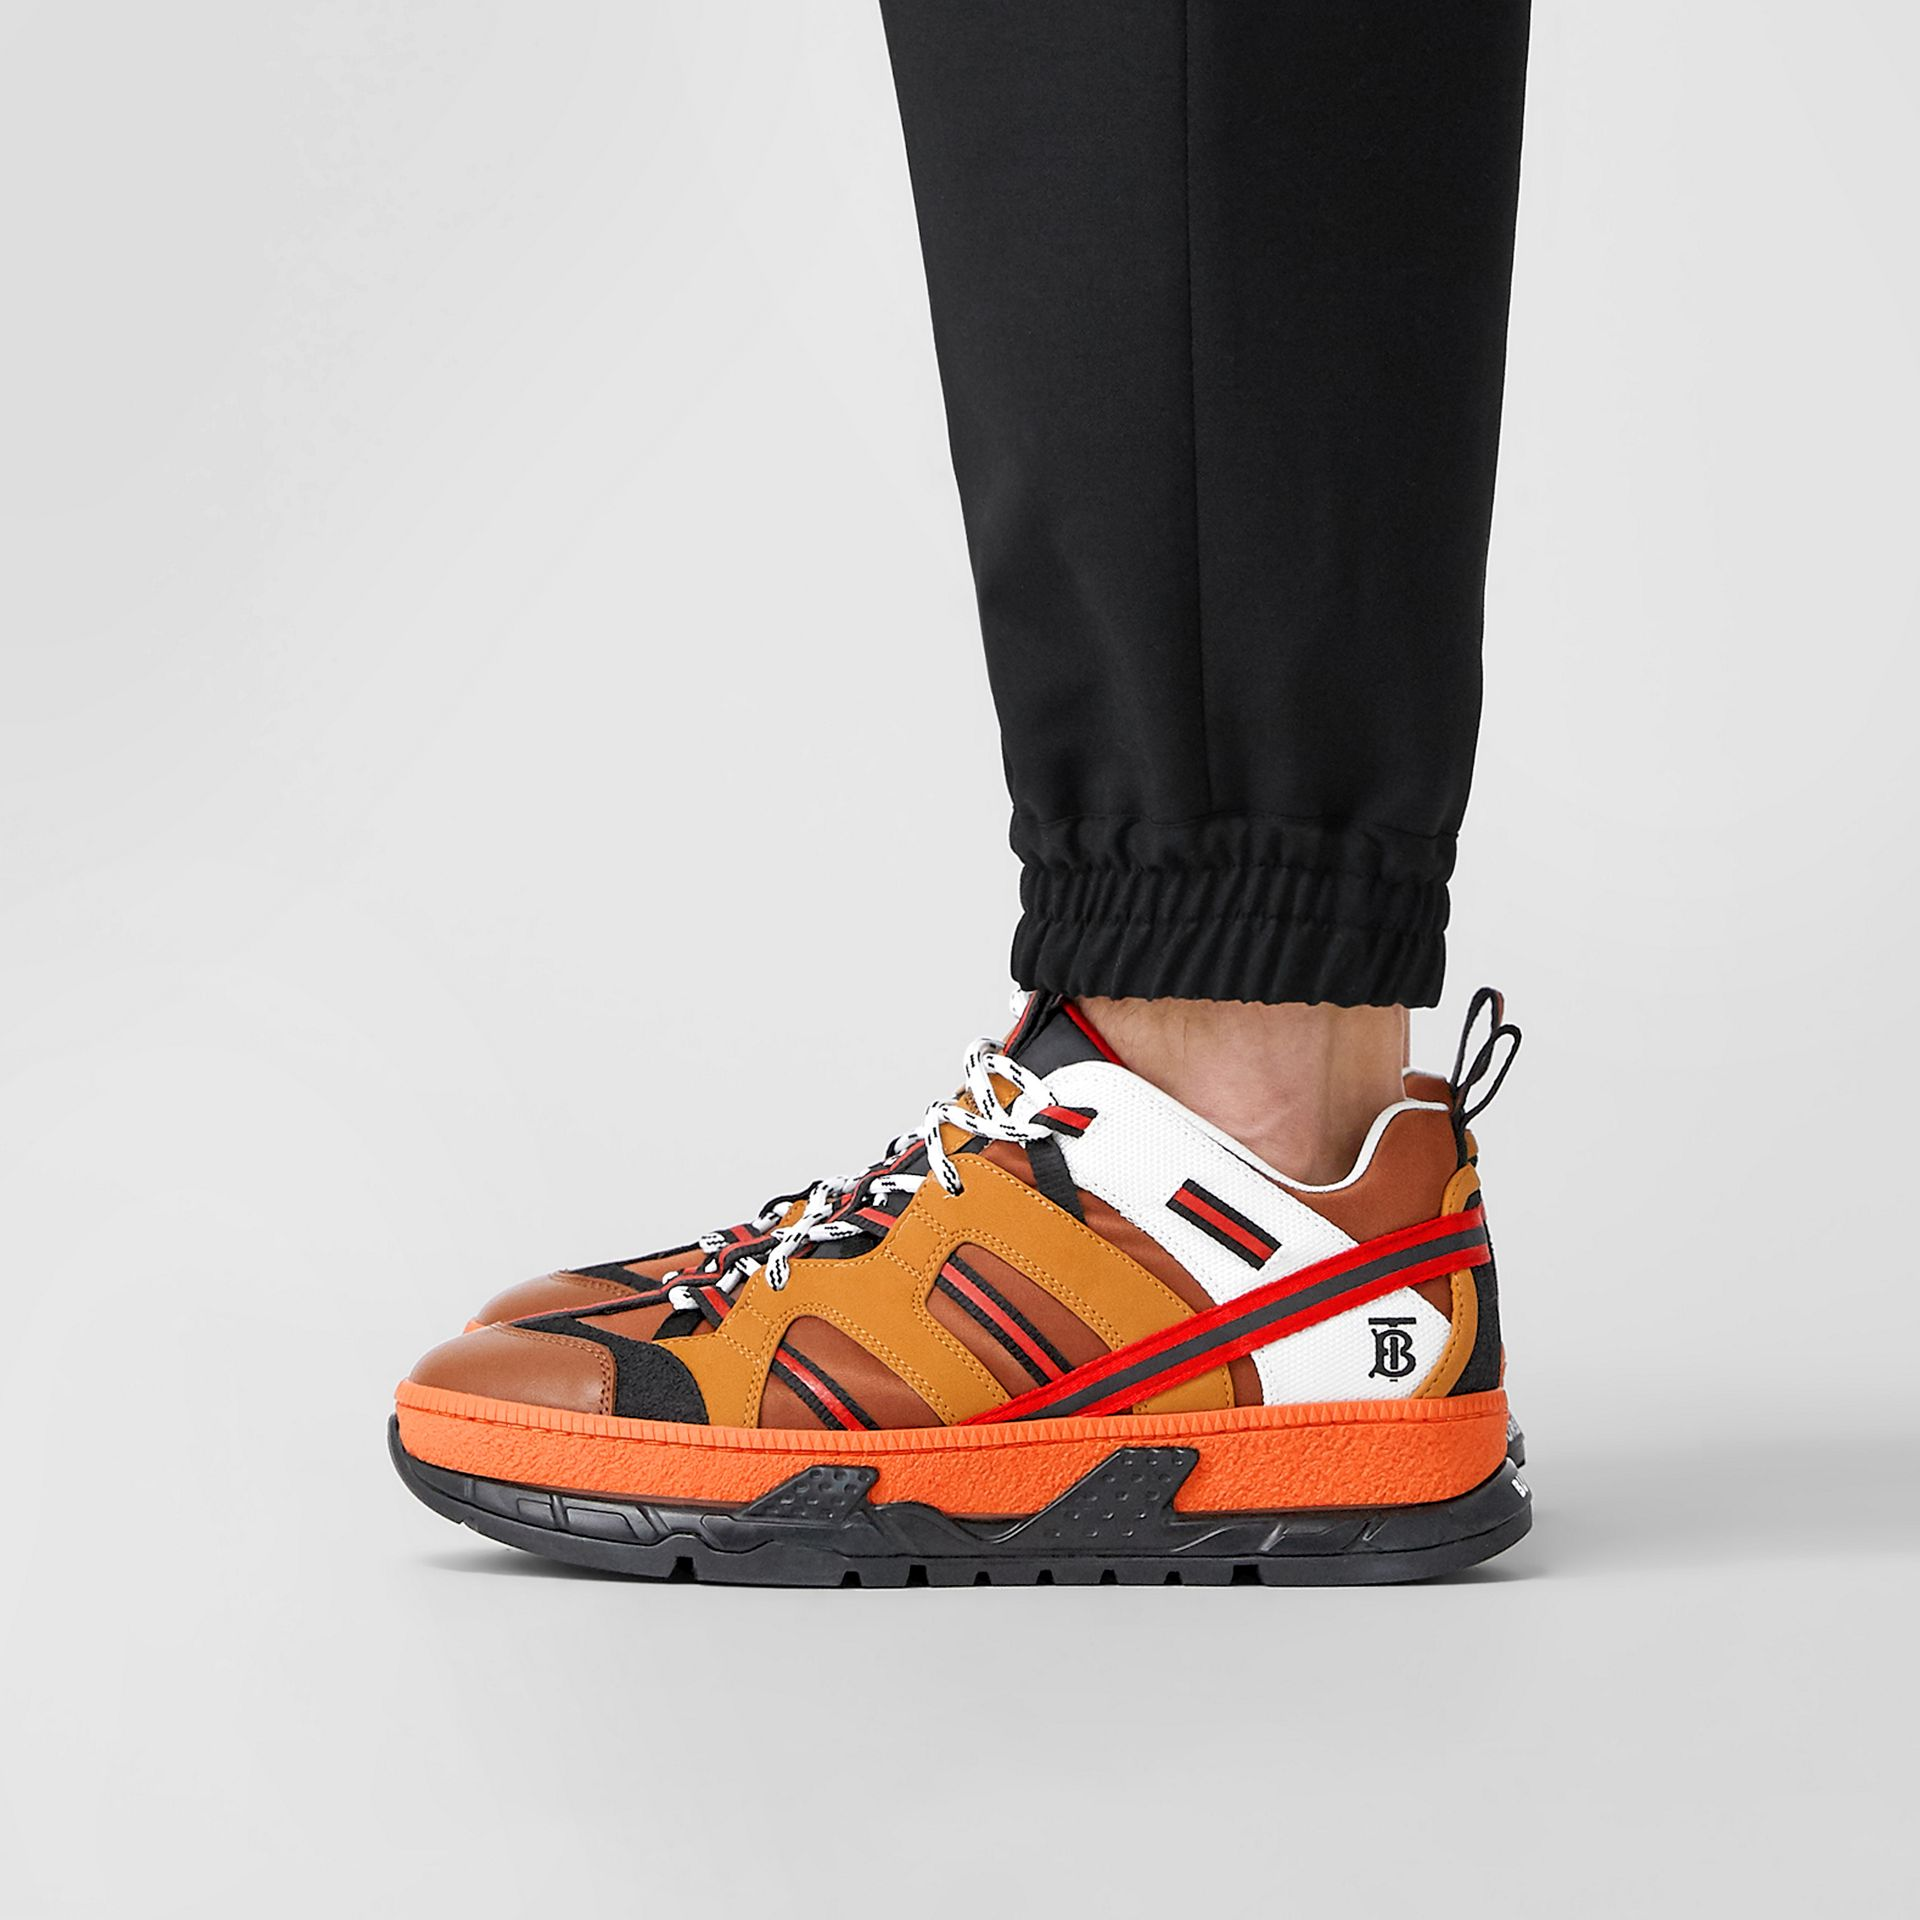 Nylon and Nubuck Union Sneakers in Orange - Men | Burberry - gallery image 2